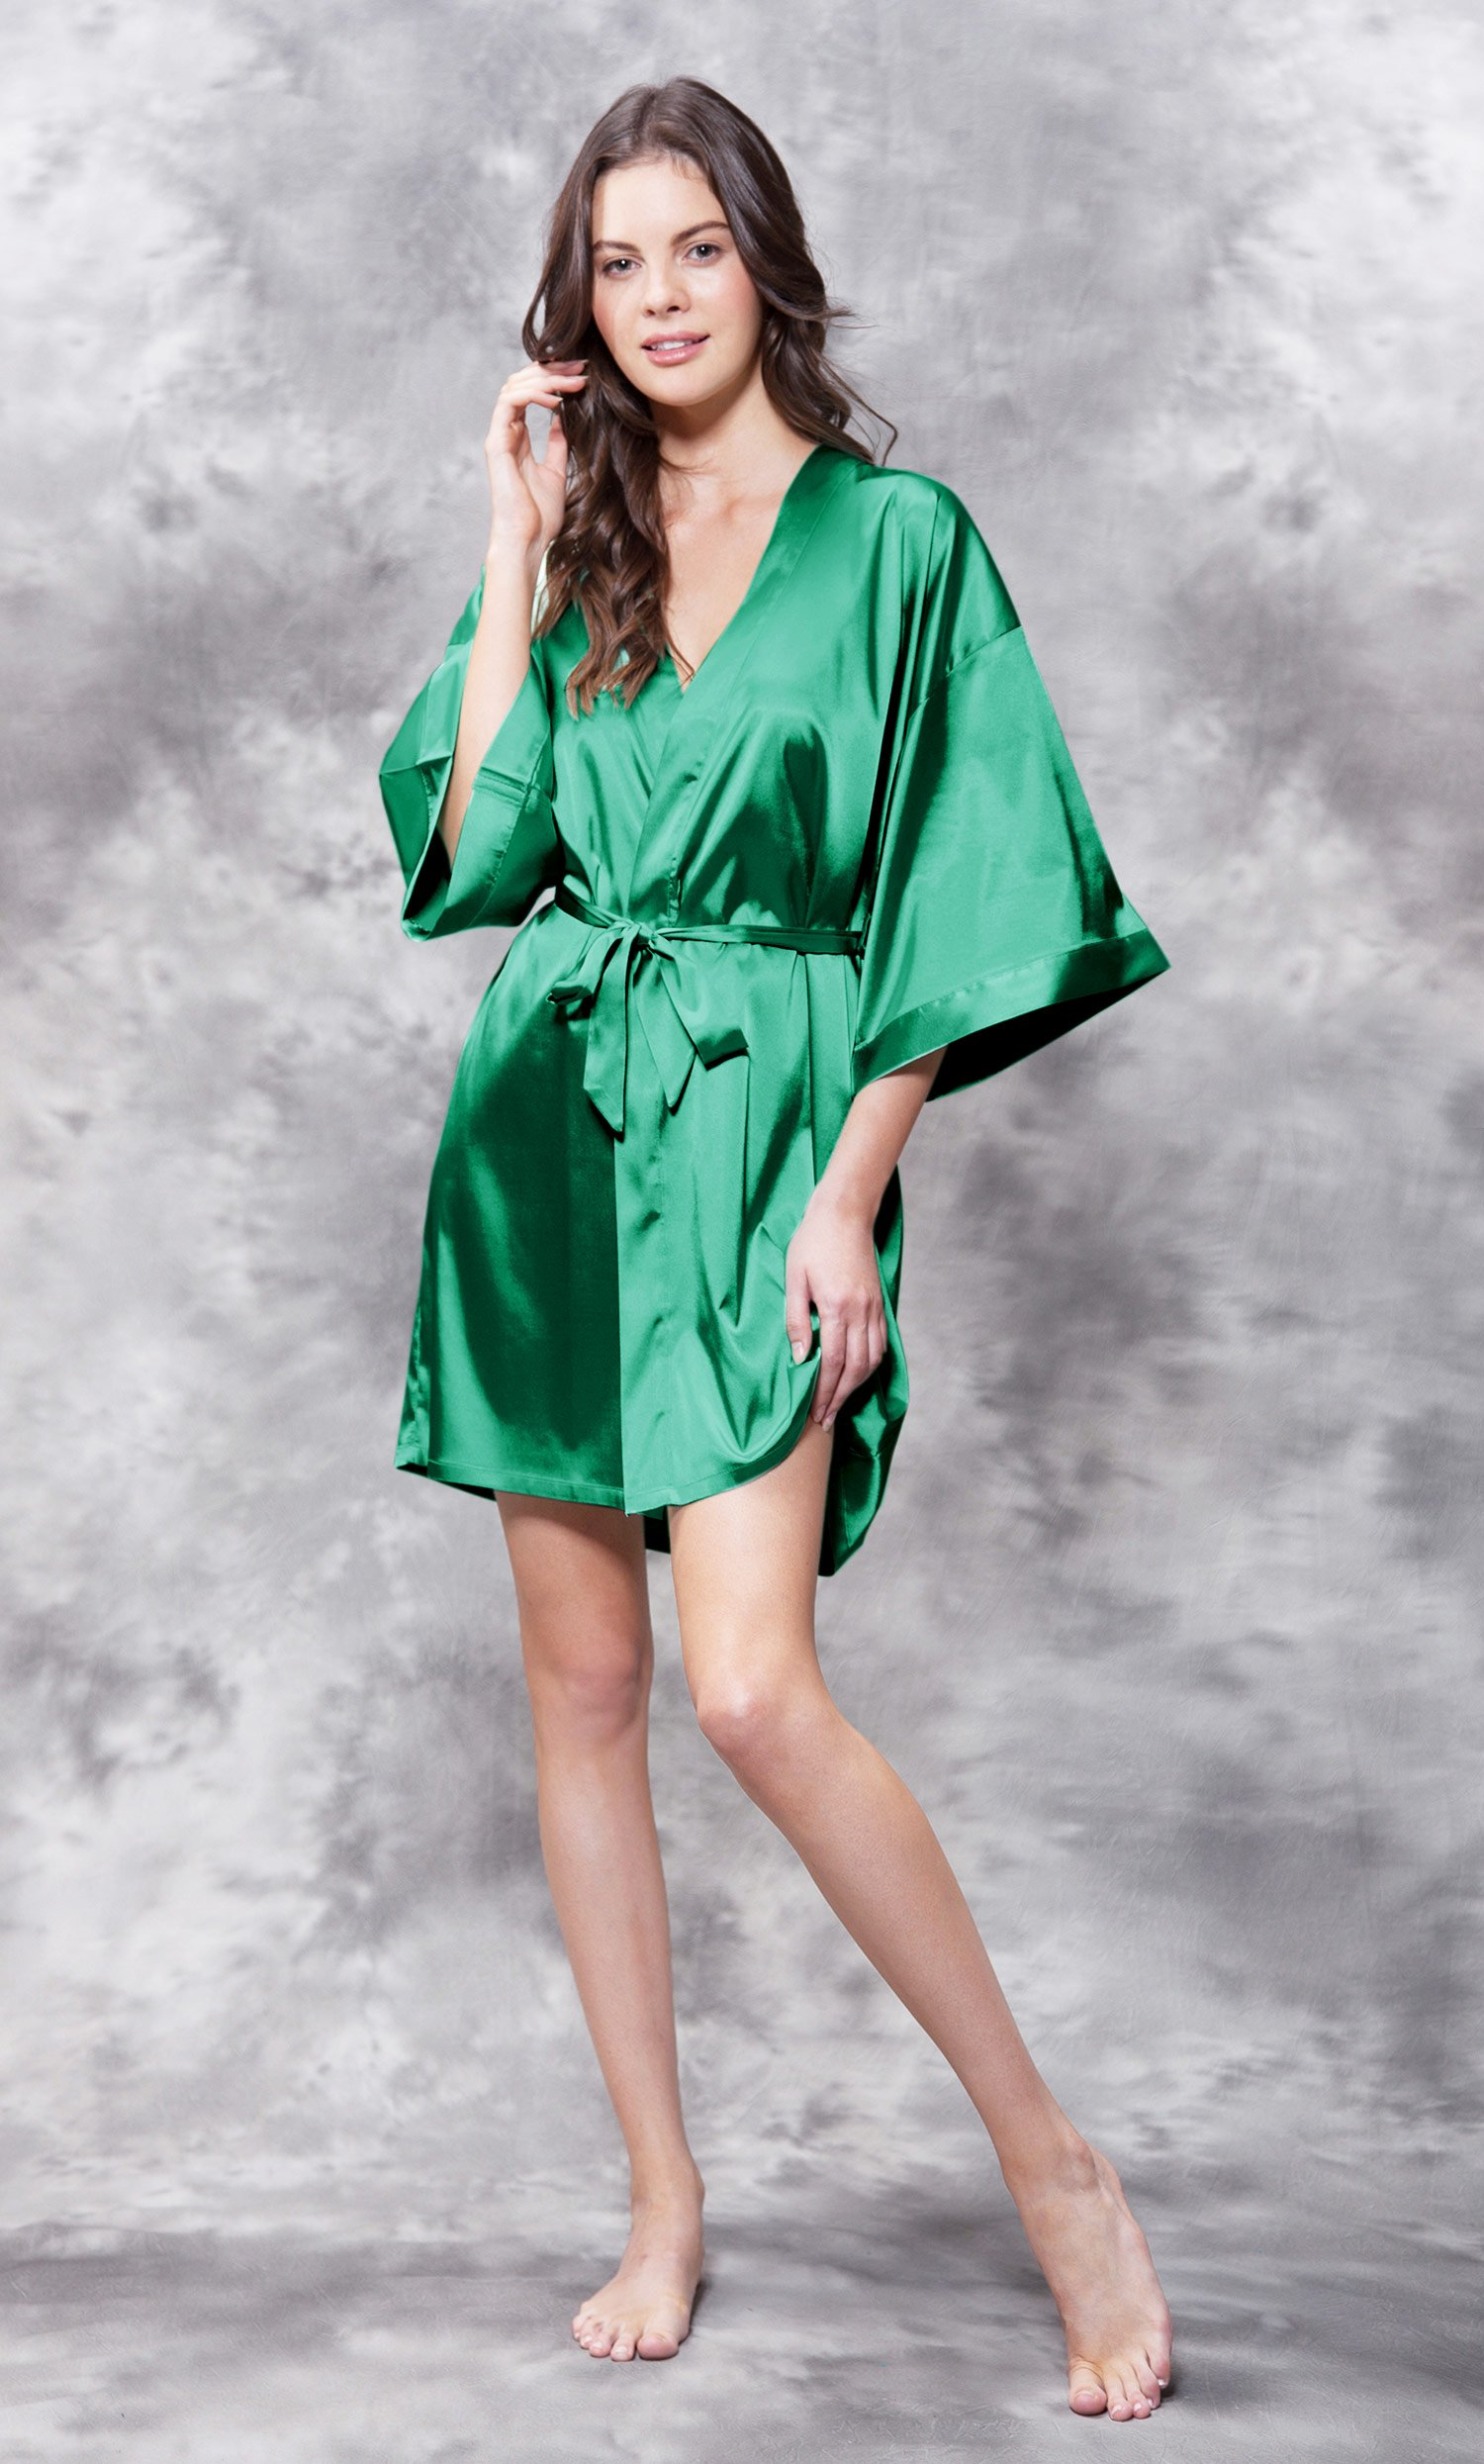 Bride Clear Rhinestone Satin Kimono Lush Meadow Green Short Robe-Robemart.com